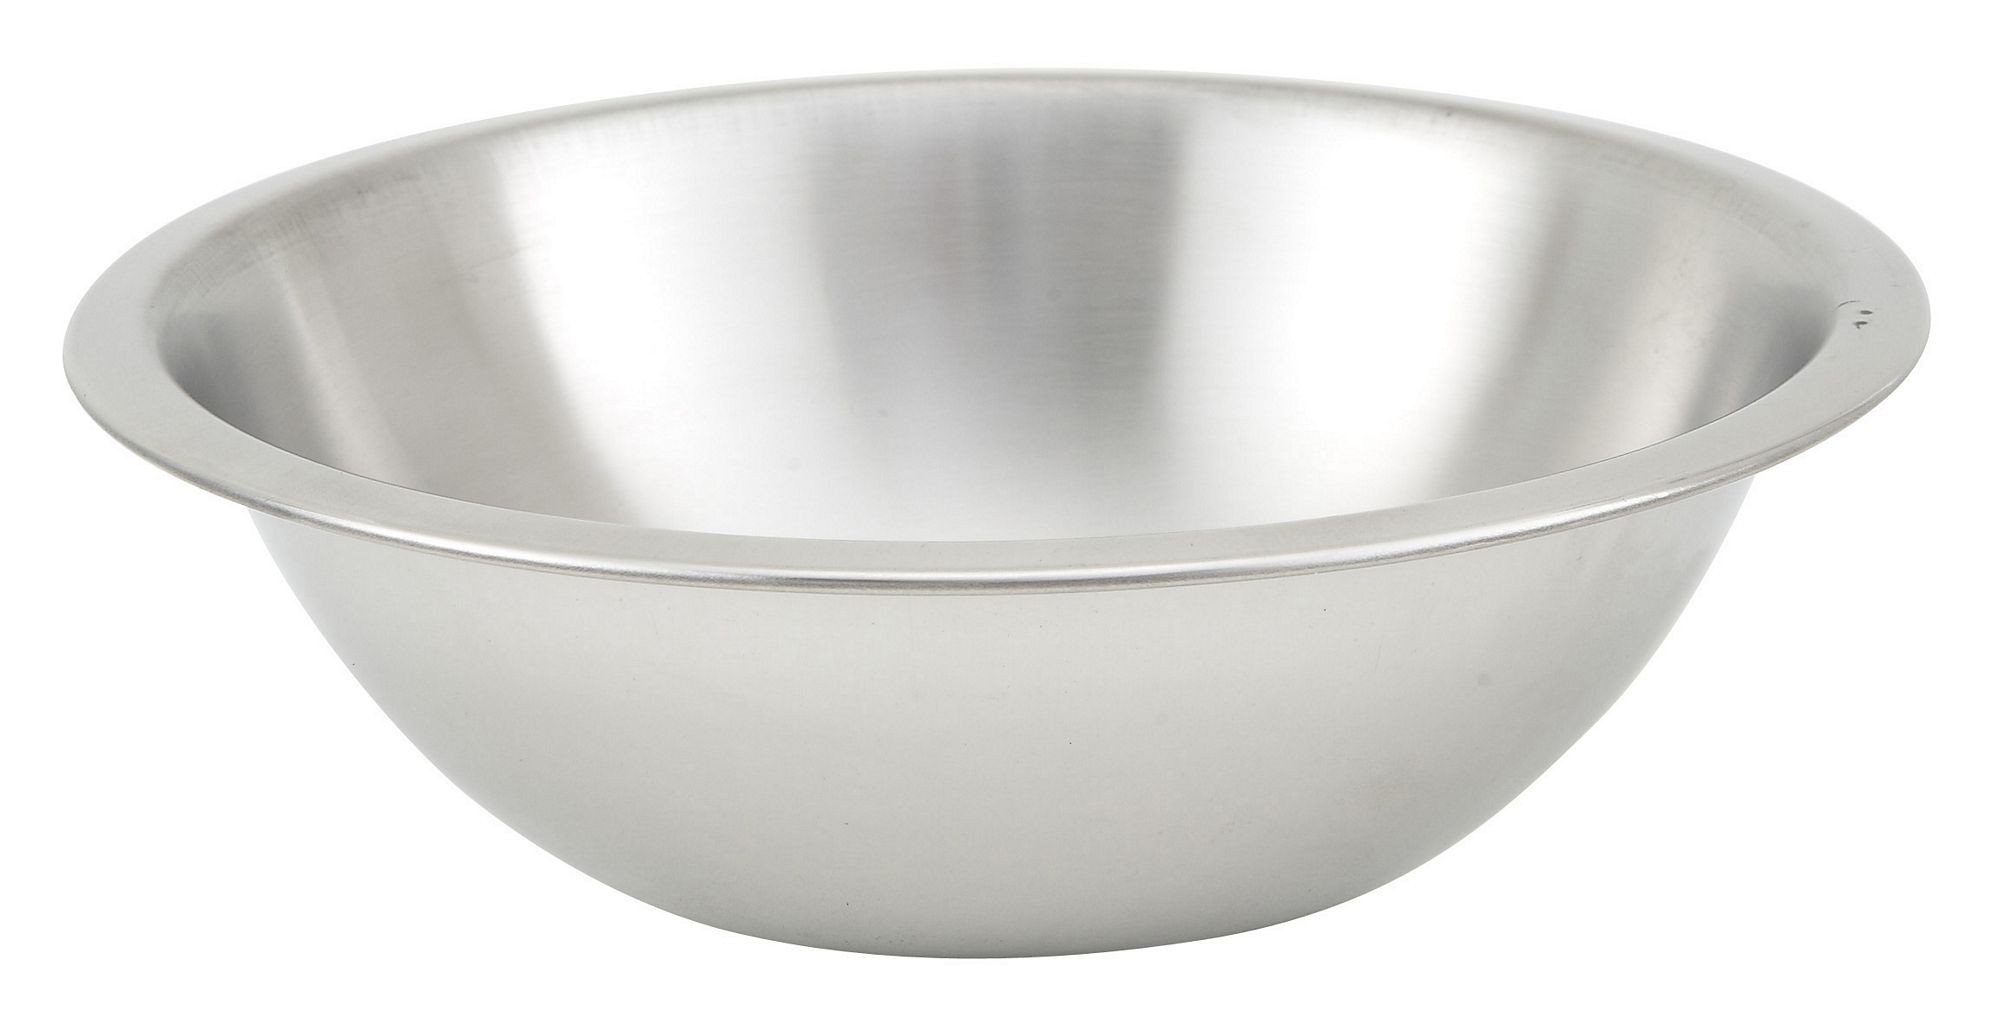 Winco MXHV-150 Heavy Duty Stainless Steel 1-1/2 Qt. Mixing Bowl